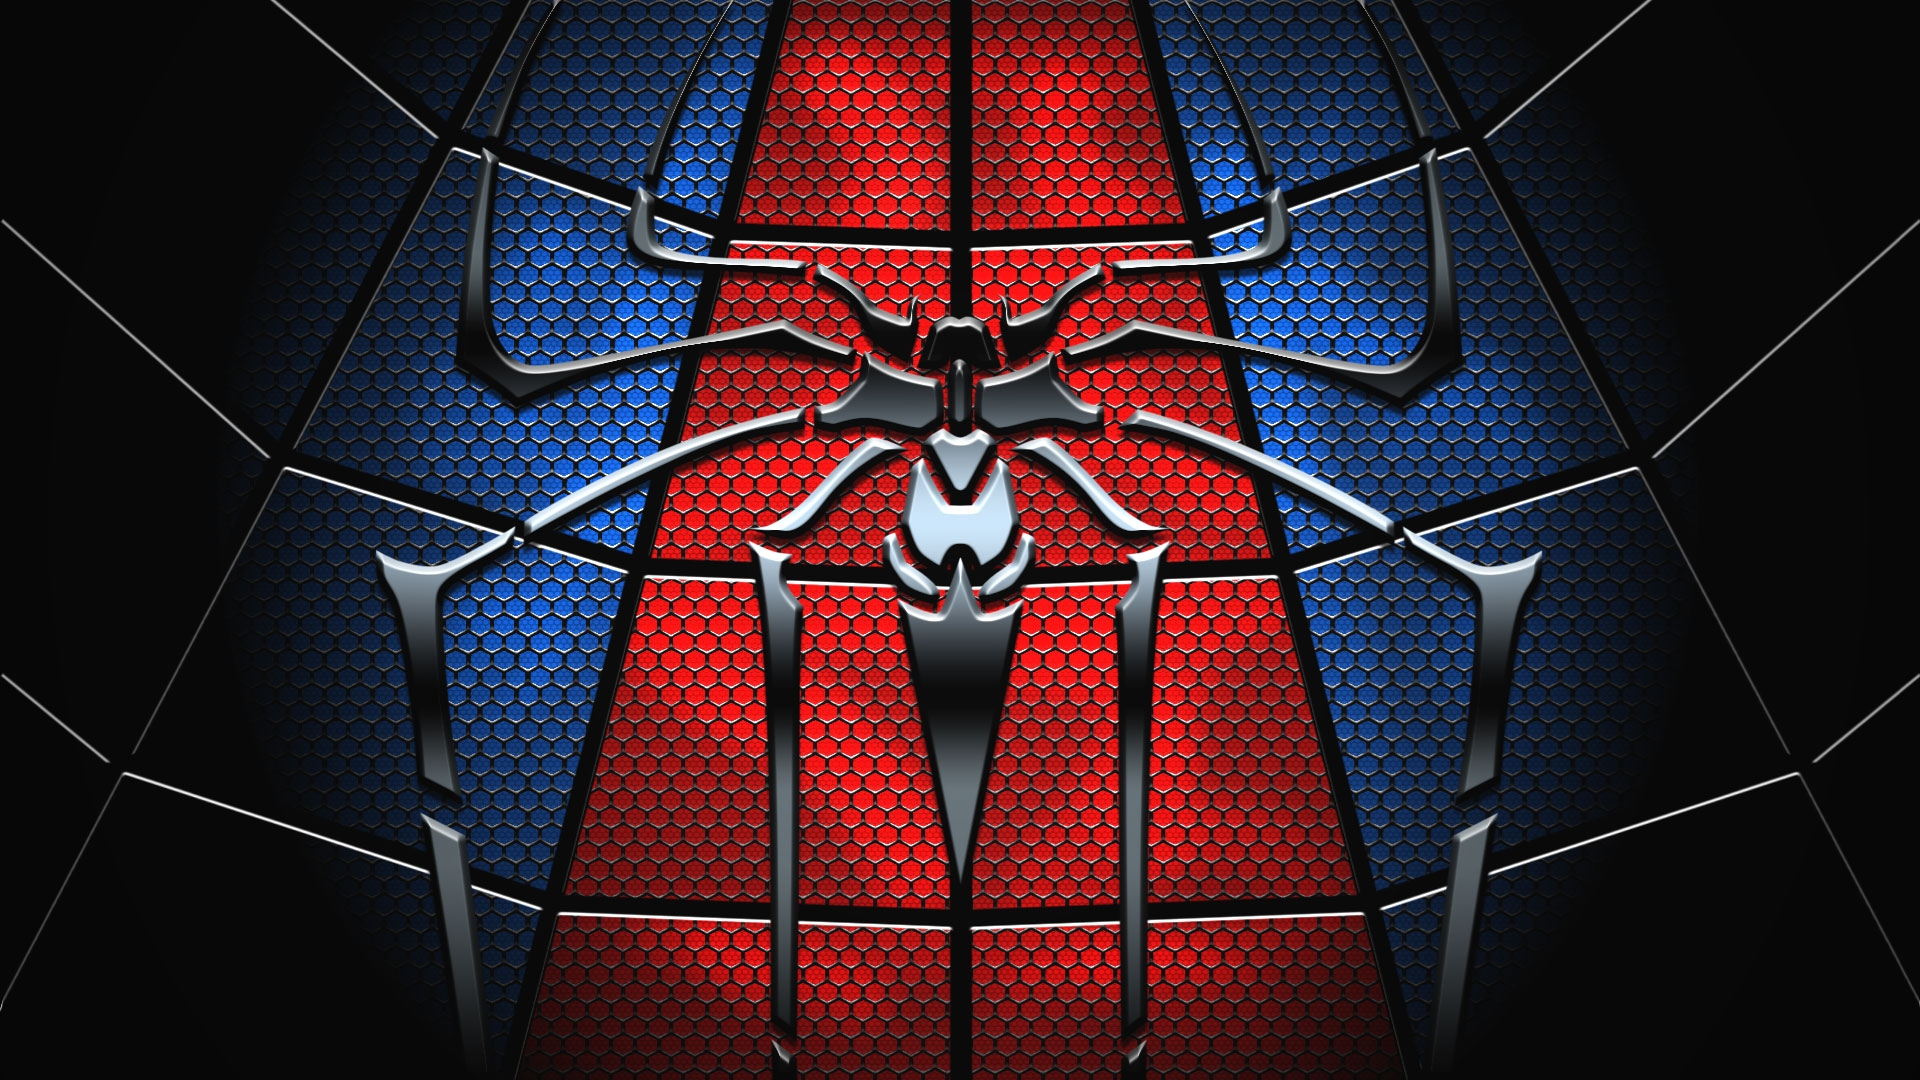 Spider Man Image Download: Download Spider Man Wallpaper